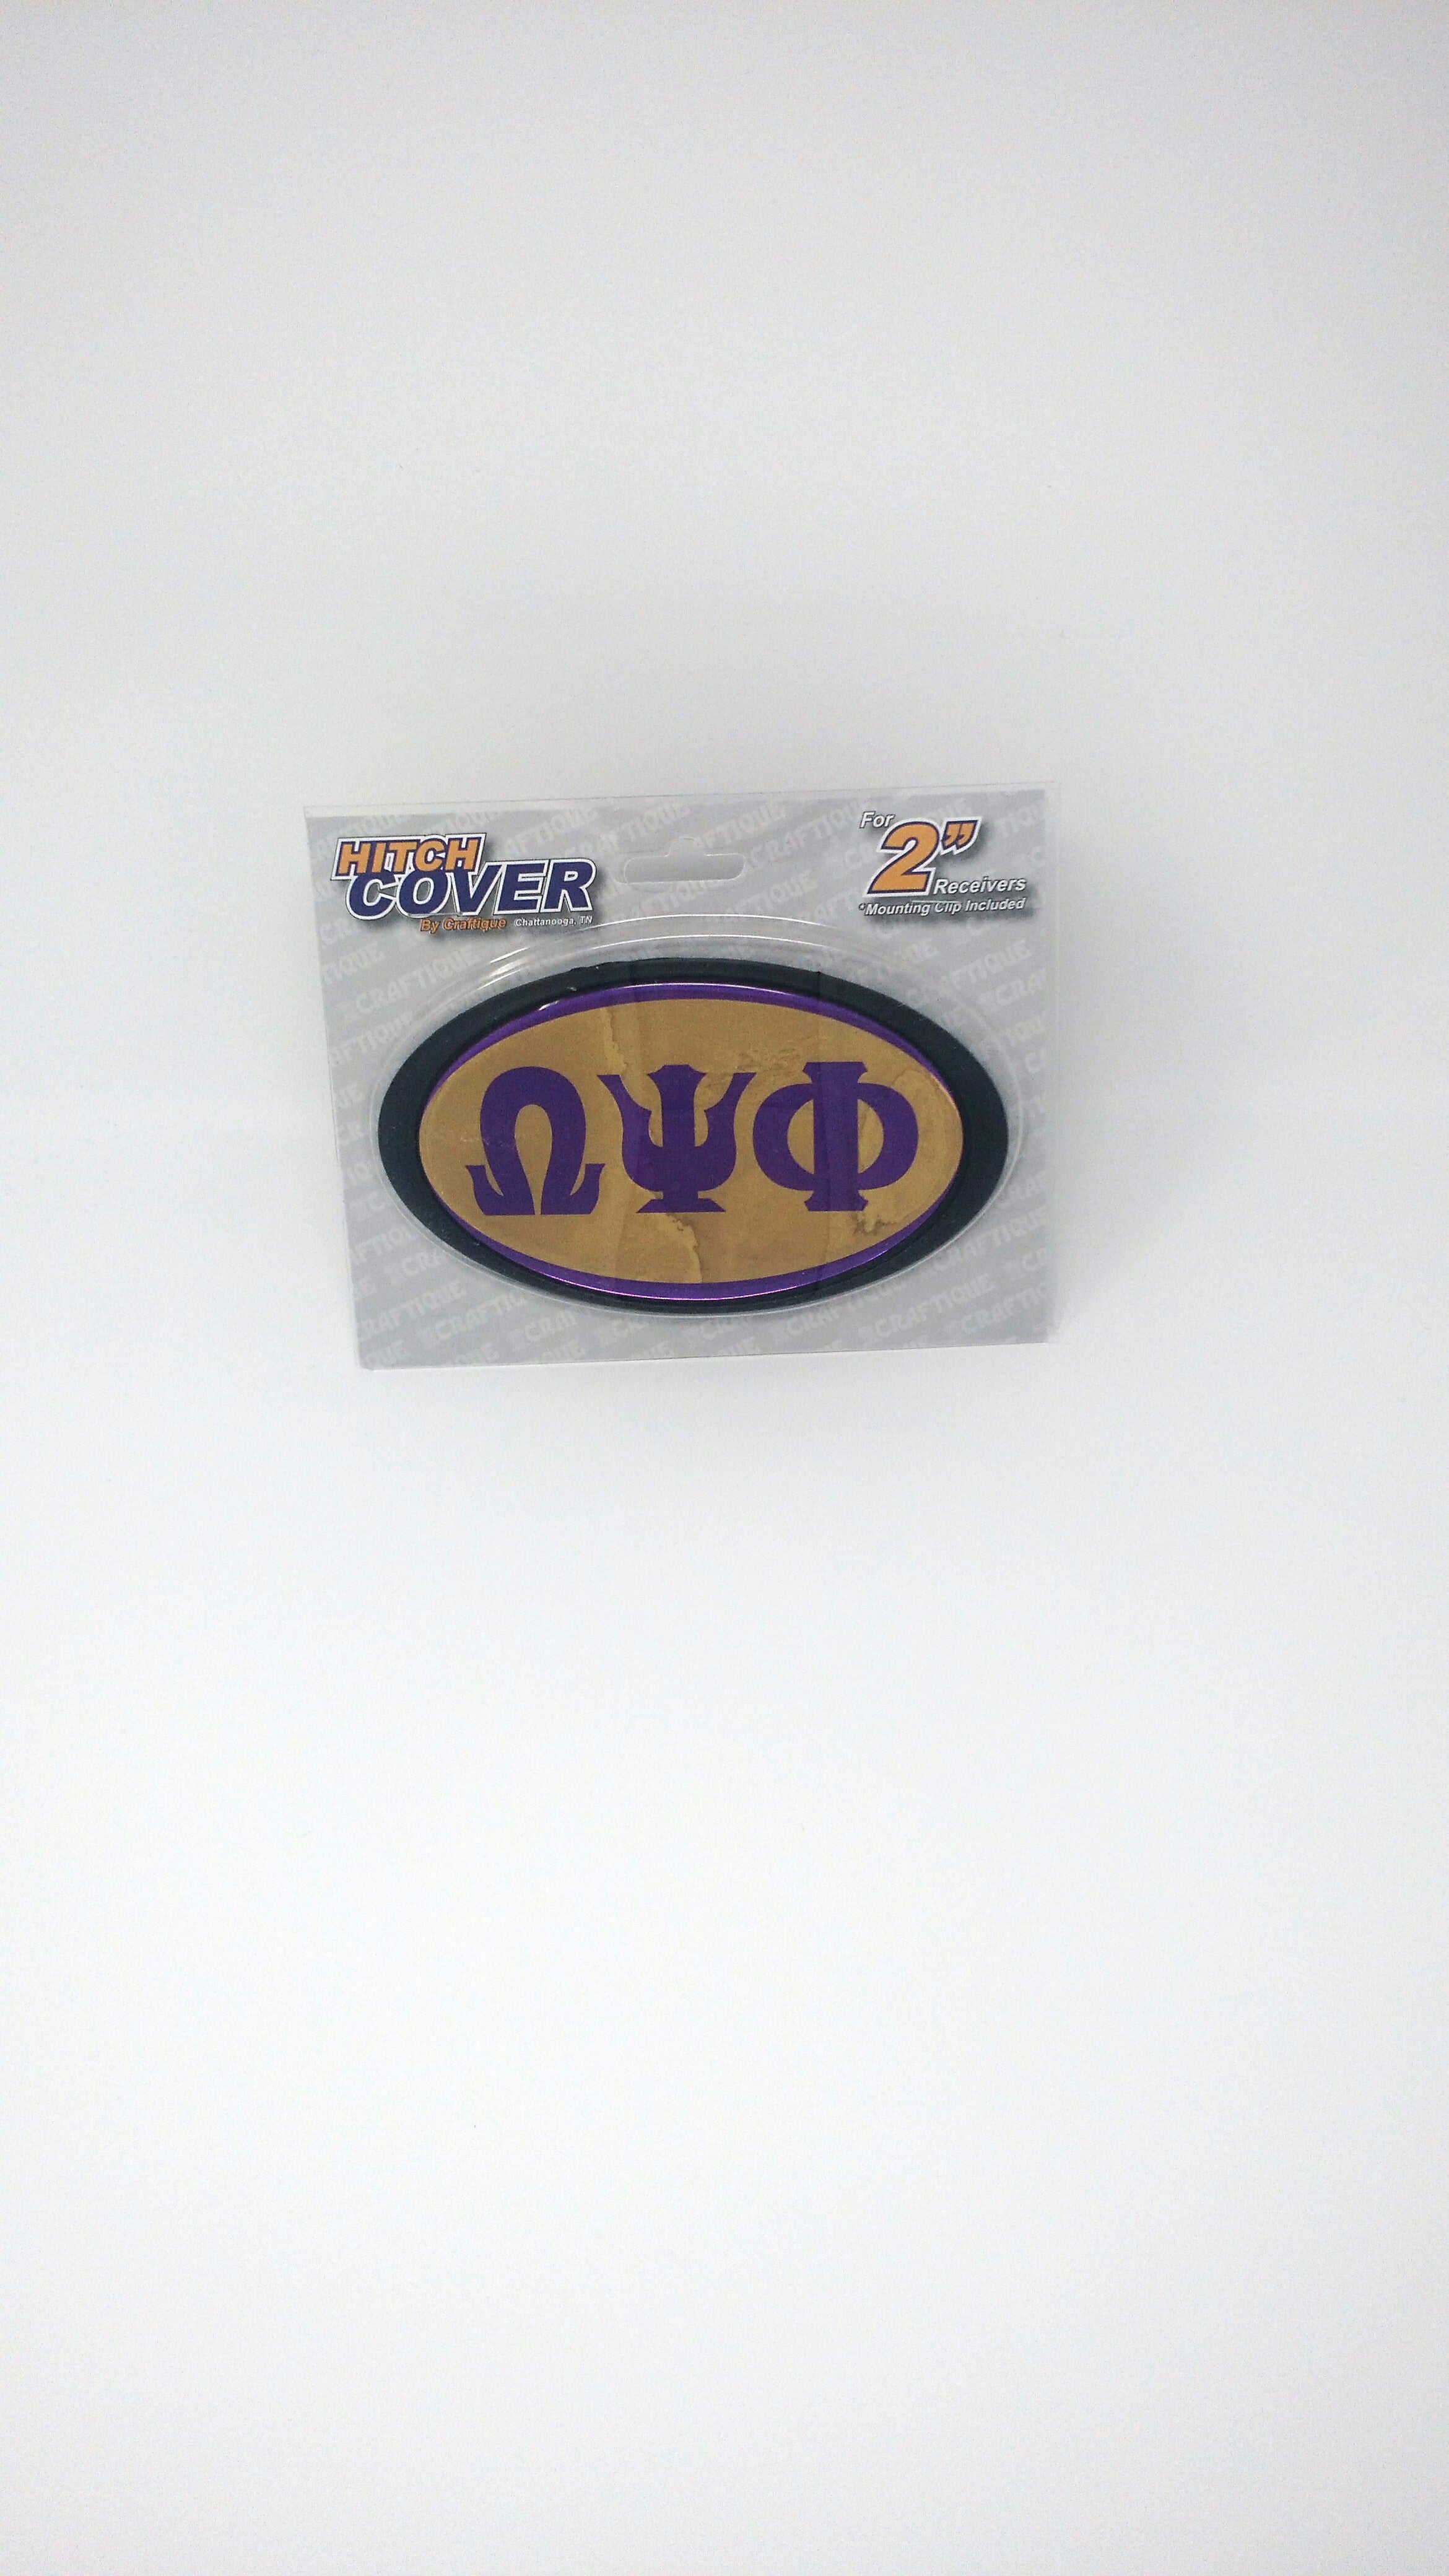 "Omega Psi Phi Car Hitch Cover. Standard 2"" hitch cover."